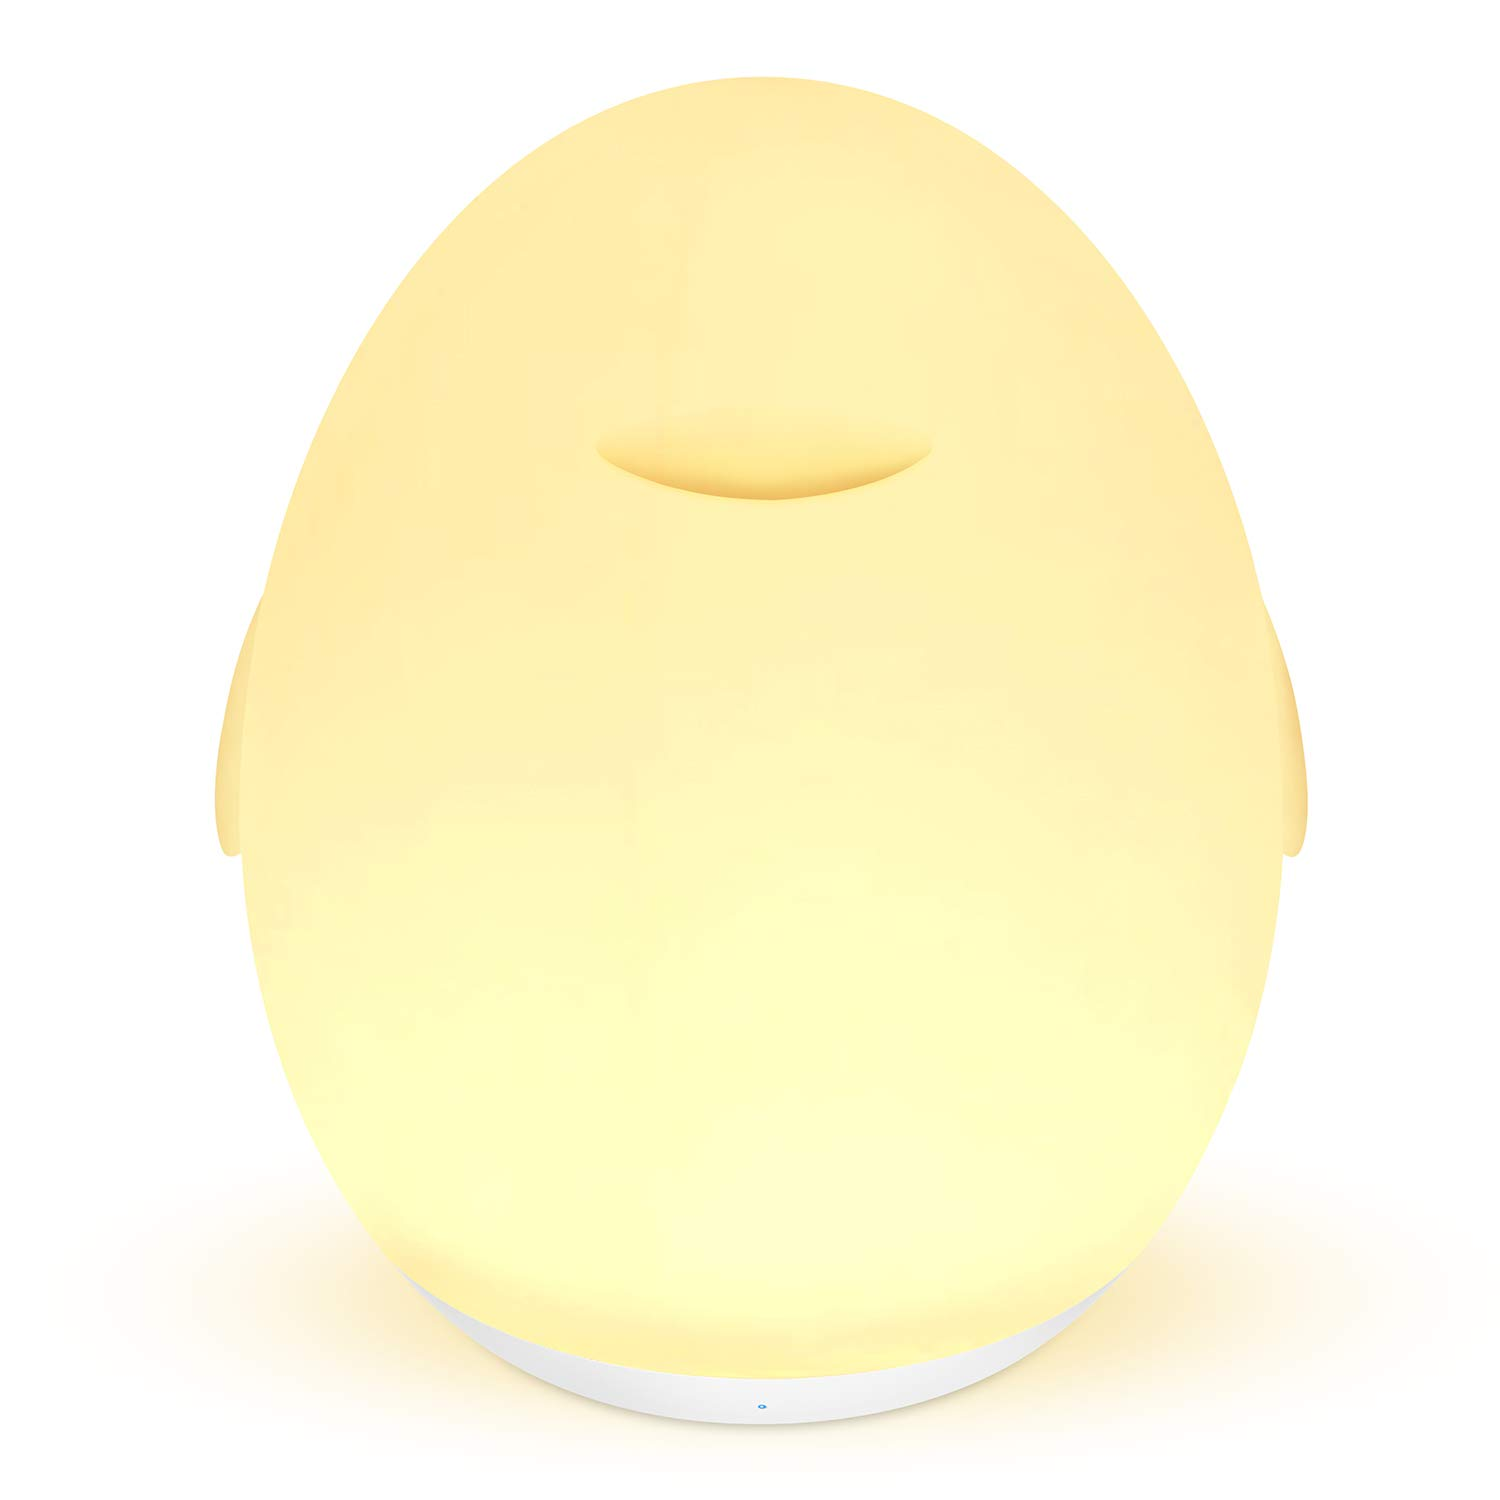 Night Lights for Kids - Baby Nursery Light Bedside Lamp for Breastfeeding with Dimming Function, Color Changing Mode, Rechargeable Night Light with Eye Caring LED, Touch Control, 1H Timer, Up to 100H by VIPEX